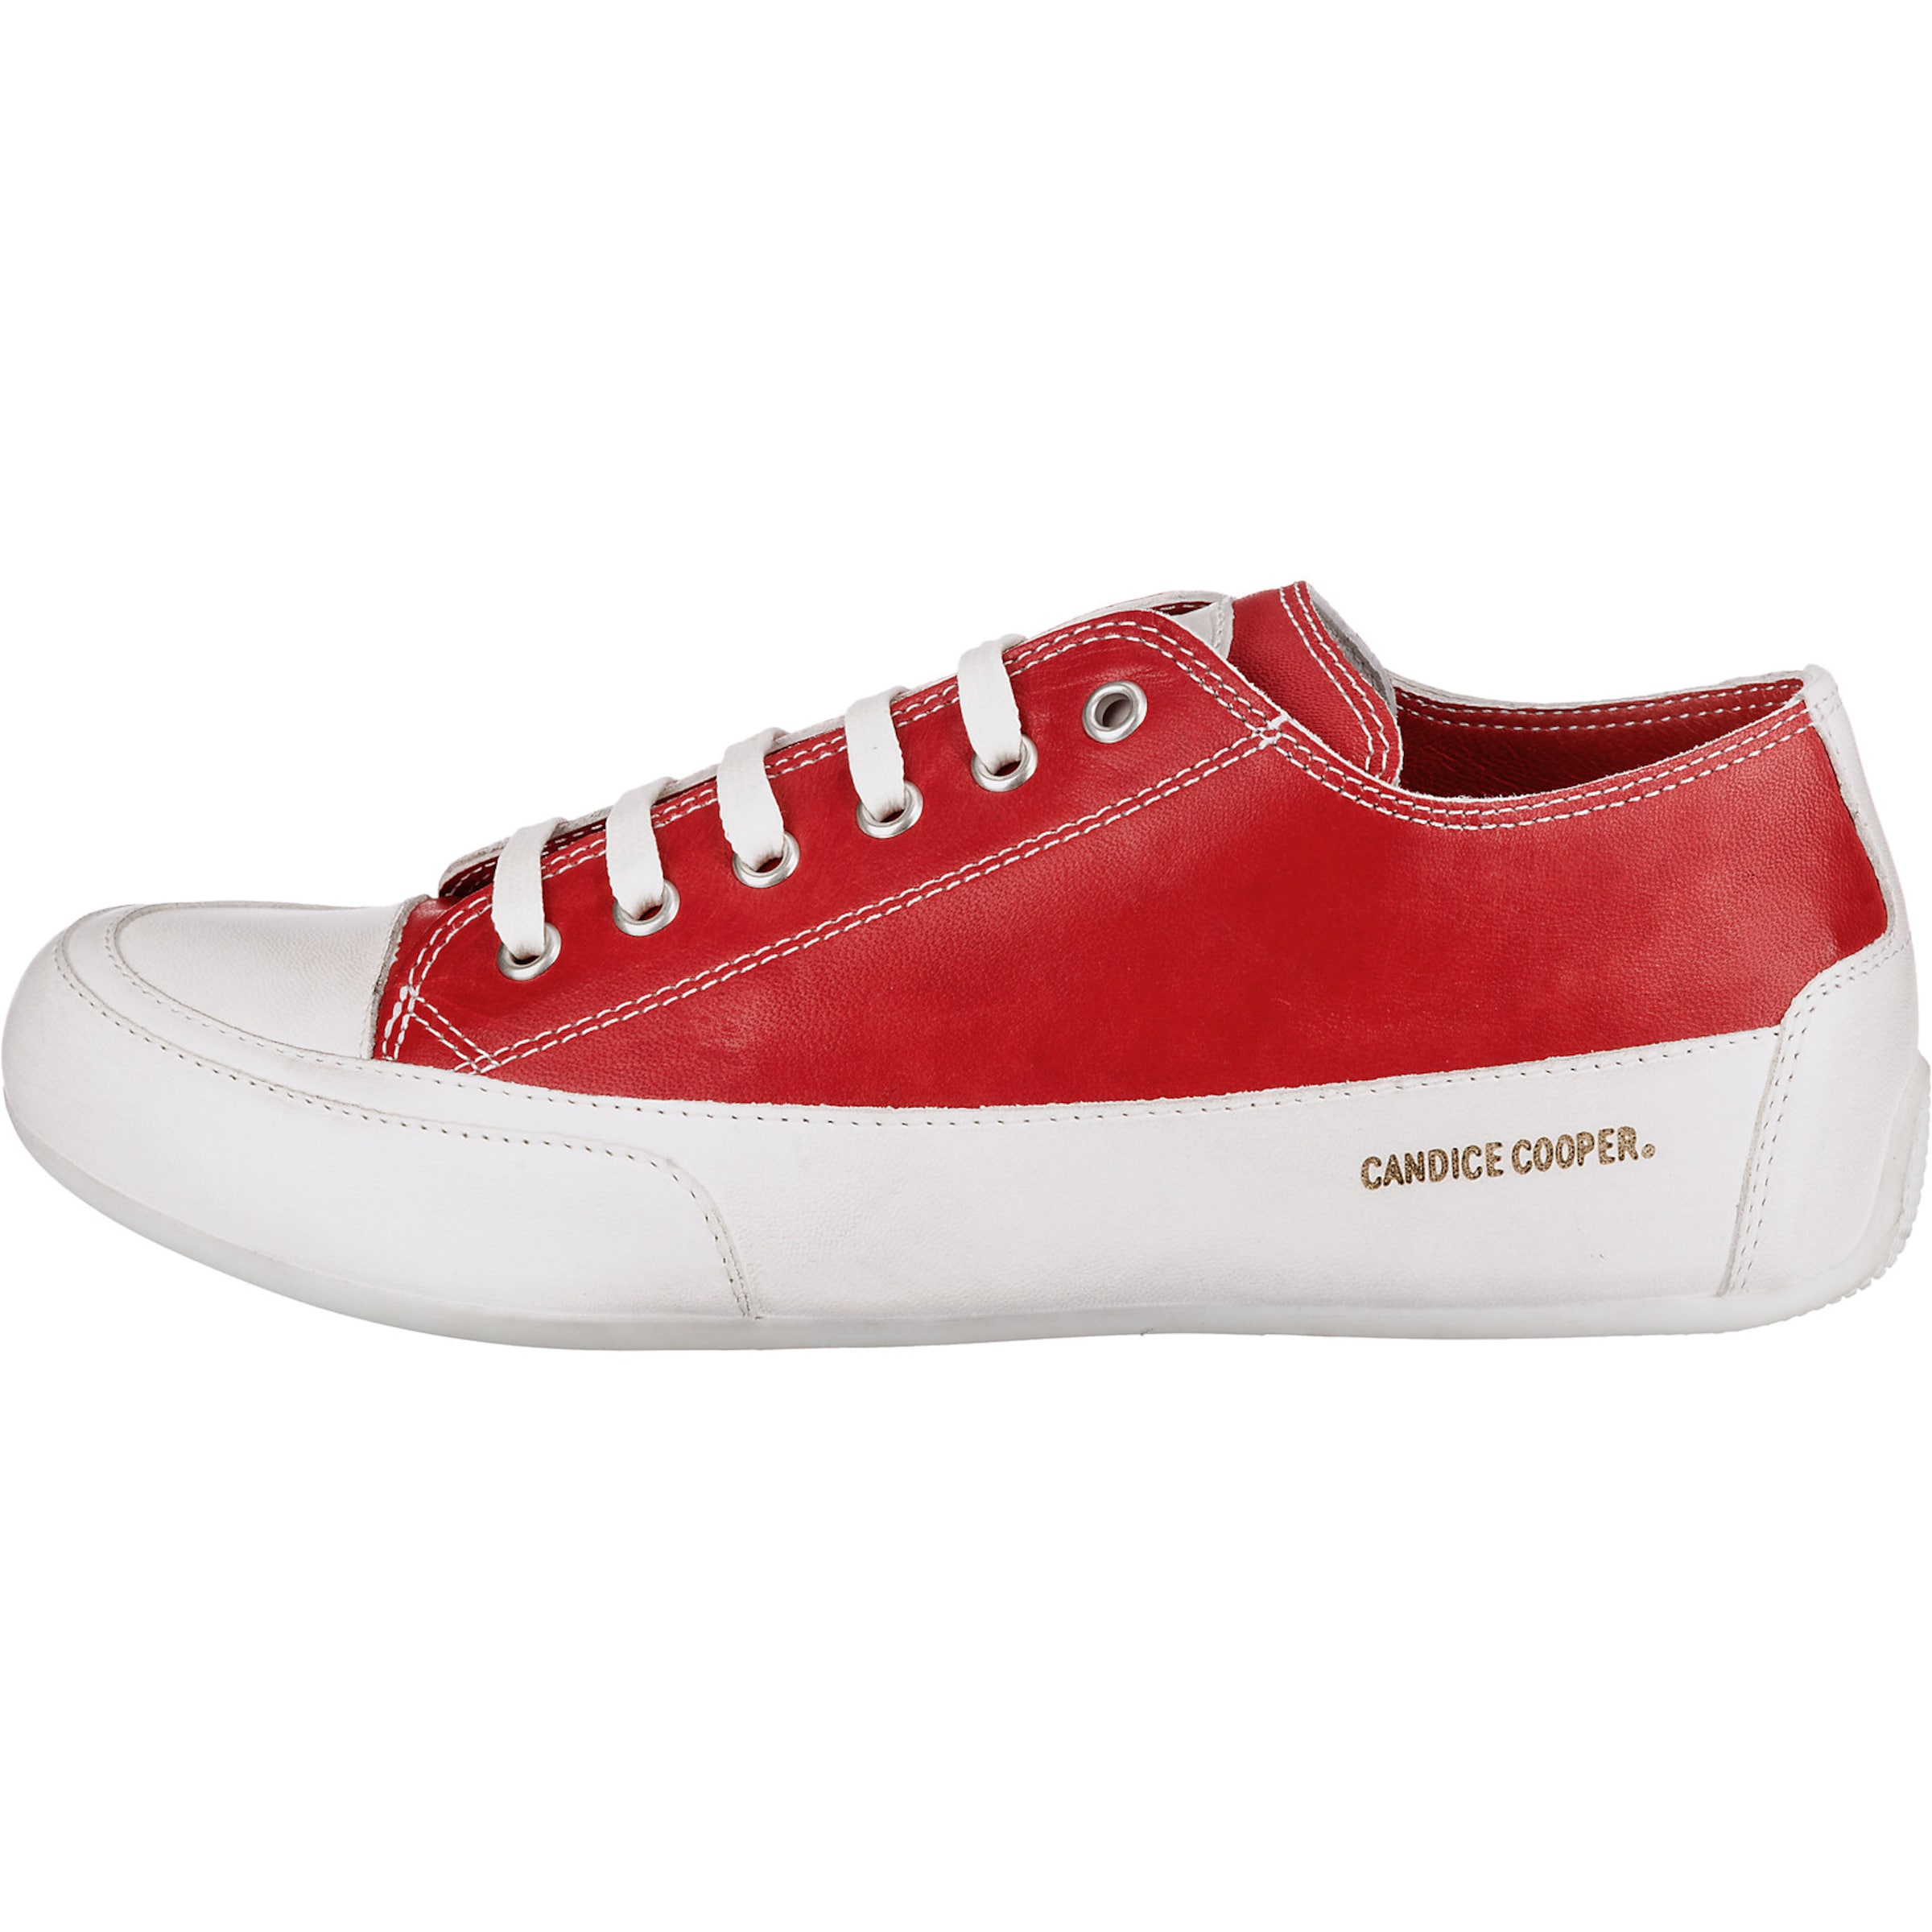 In RotWeiß Candice Low Cooper Sneakers 7Ybyf6g